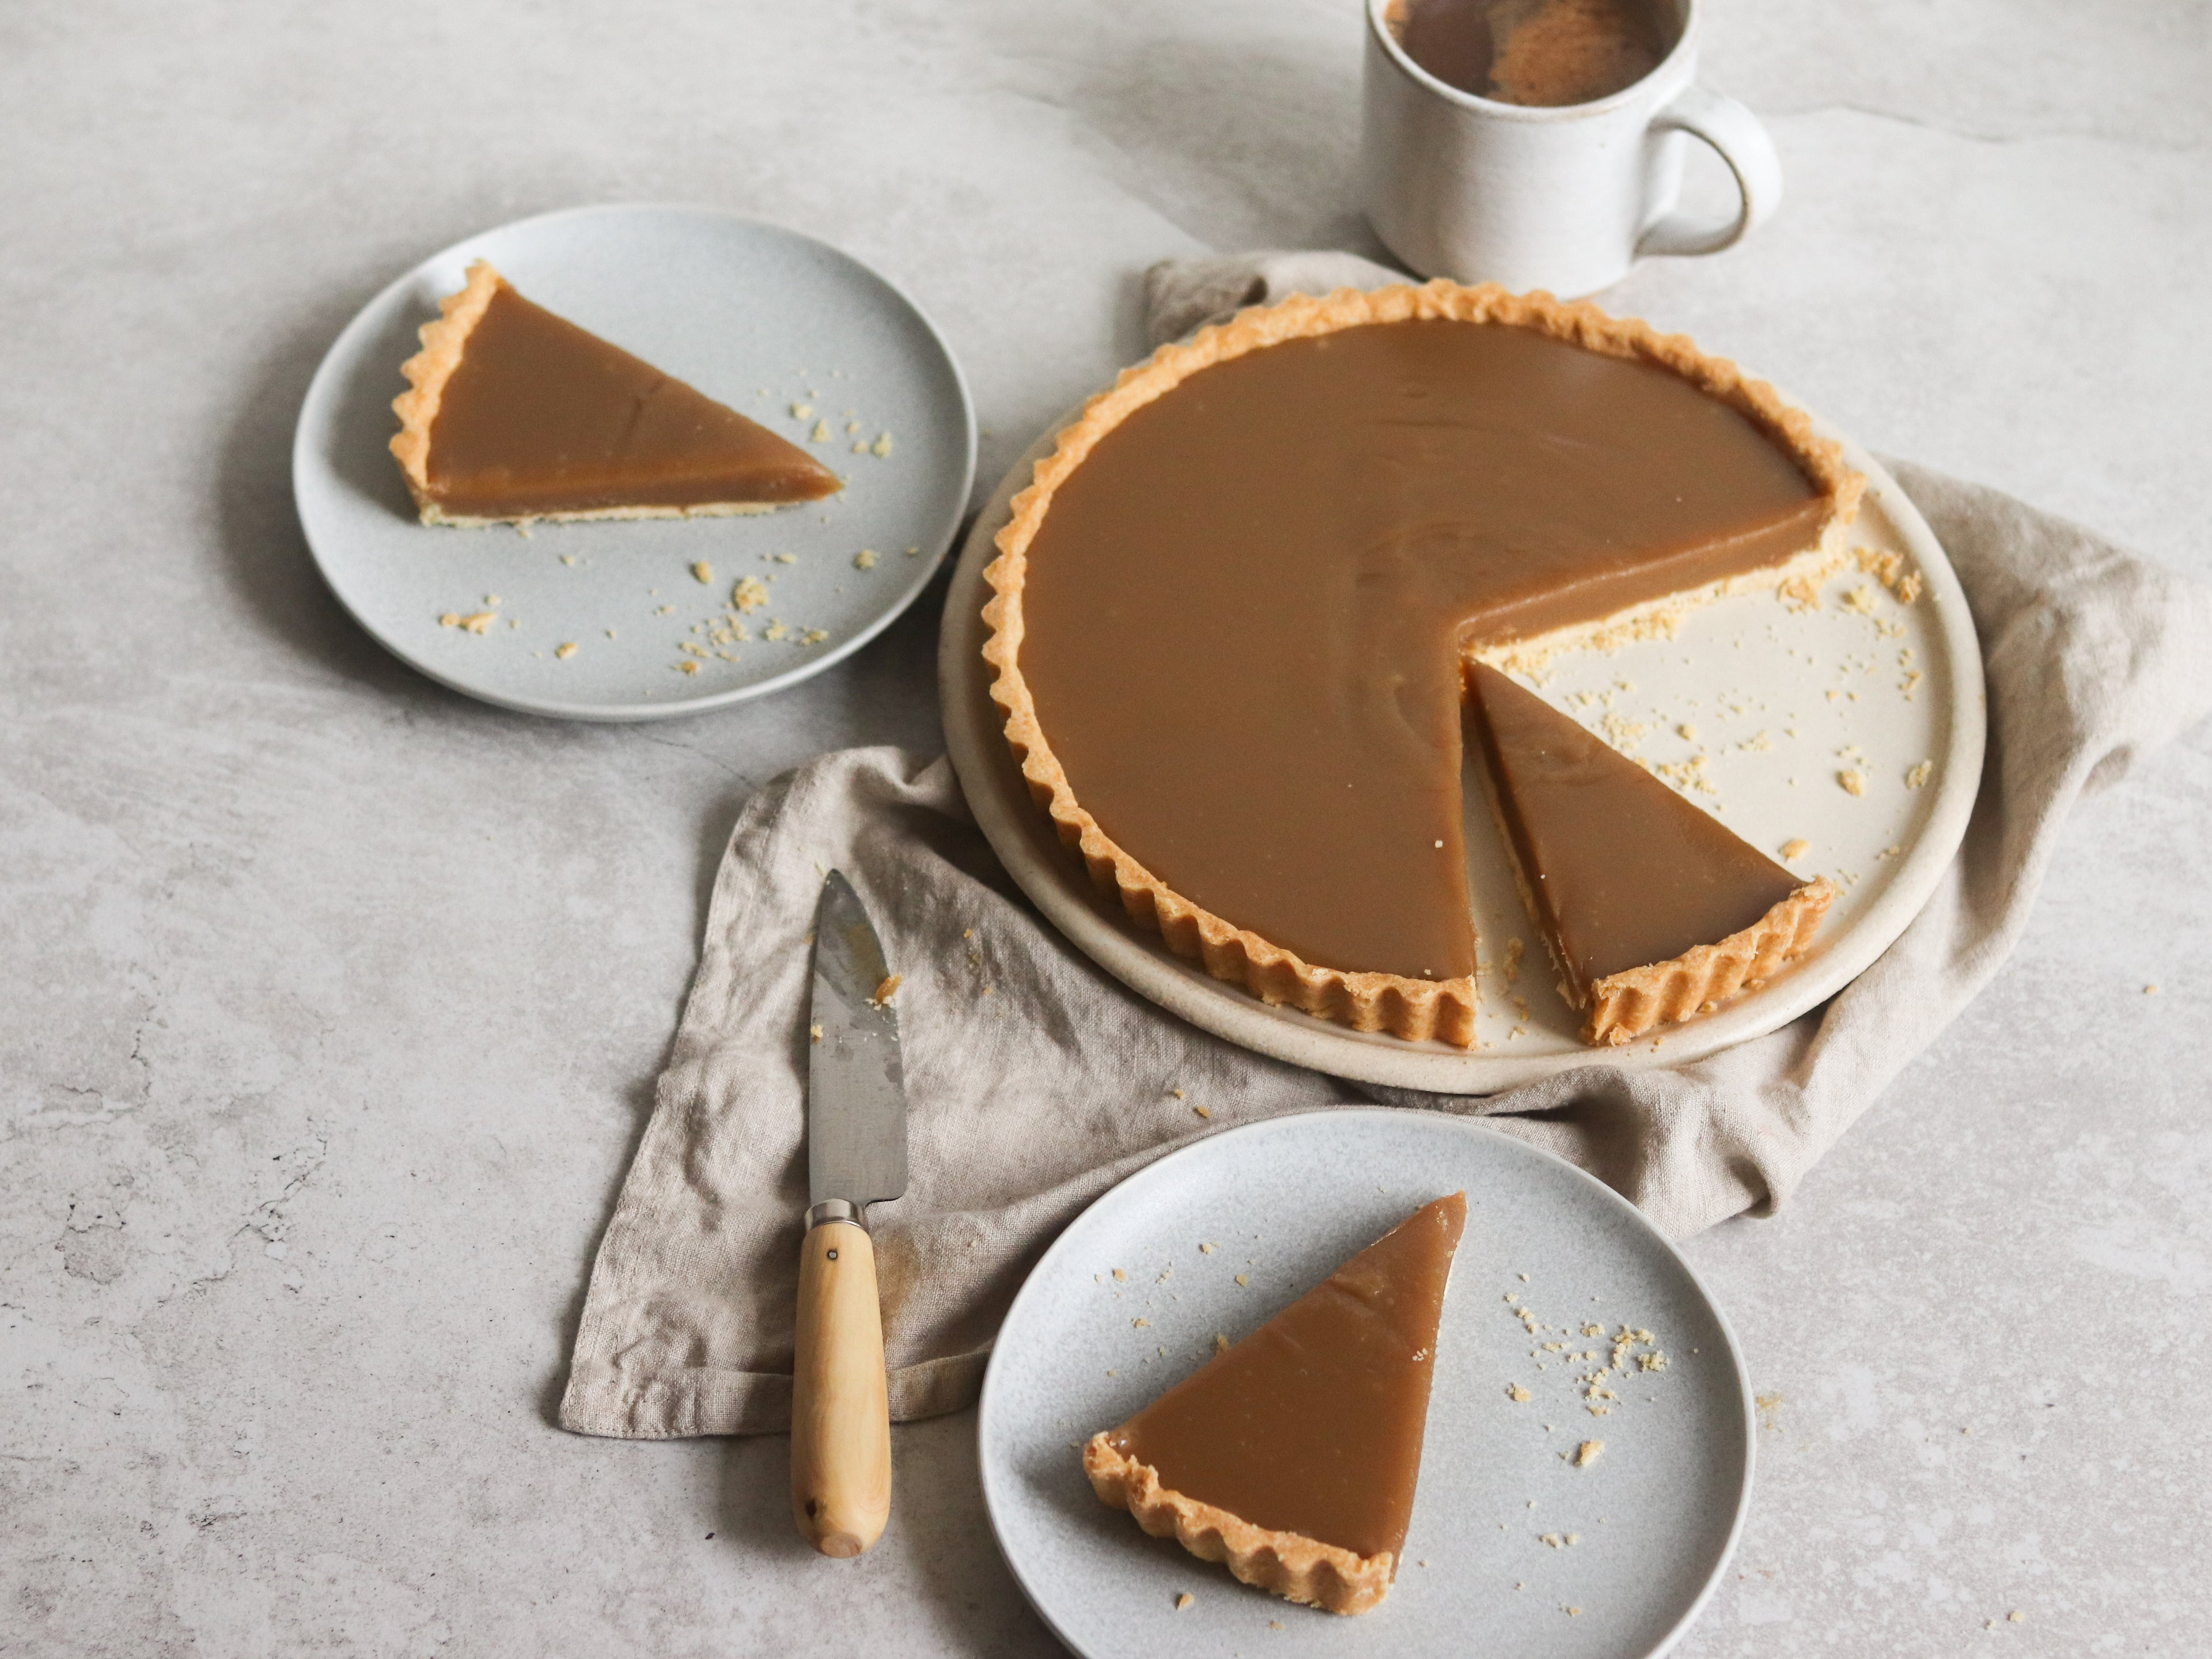 Slices of Butterscotch Tart sliced up onto plates, lay on top of linen